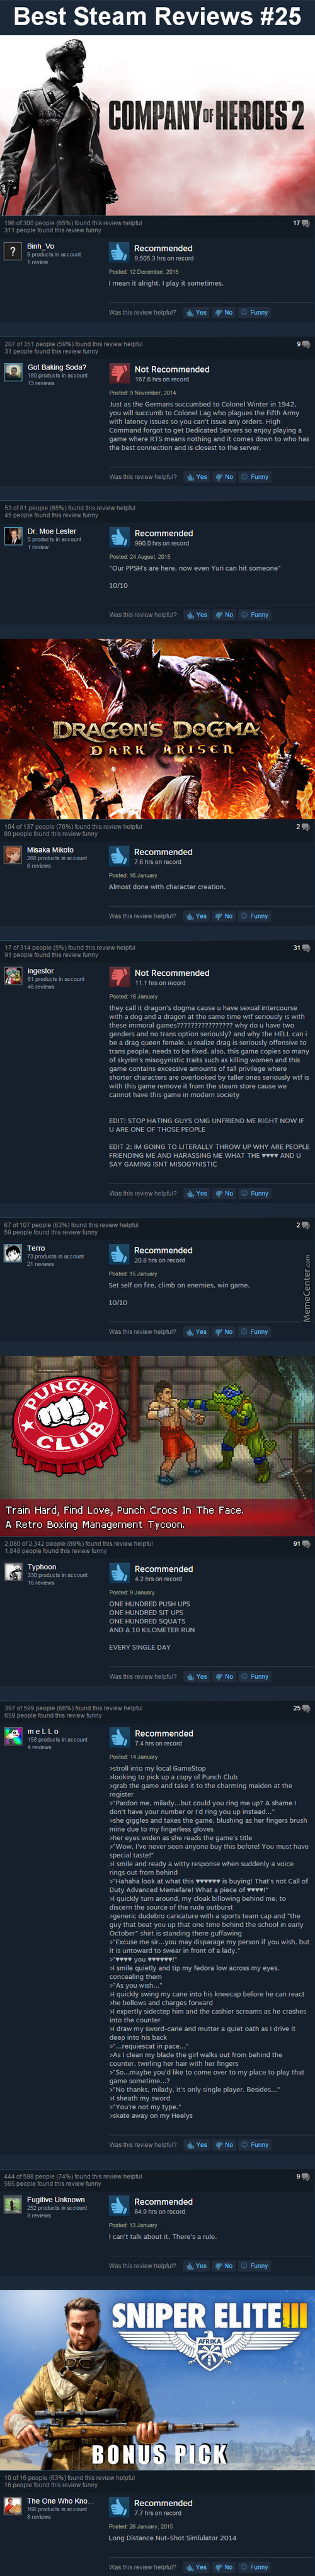 Best Steam Reviews #25 - I Found Tumblr On Steam!